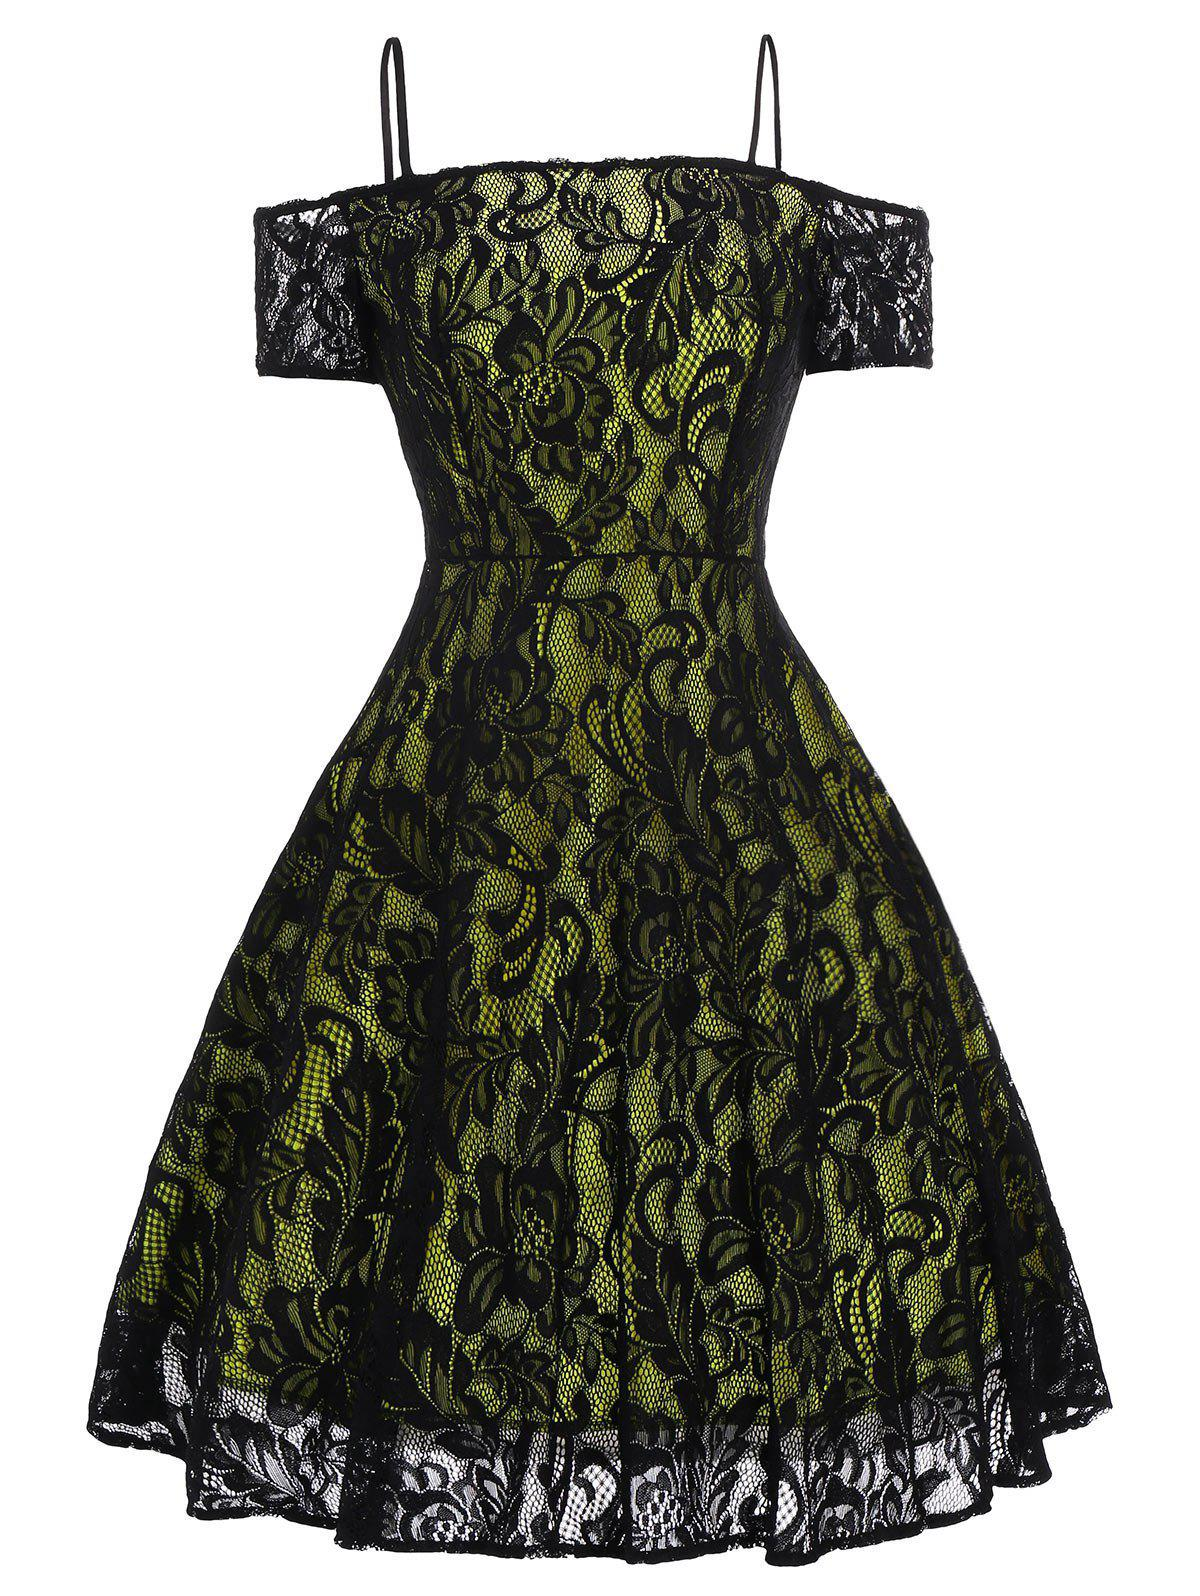 Vintage Lace Fit and Flare Dress lace overlay fit and flare dress